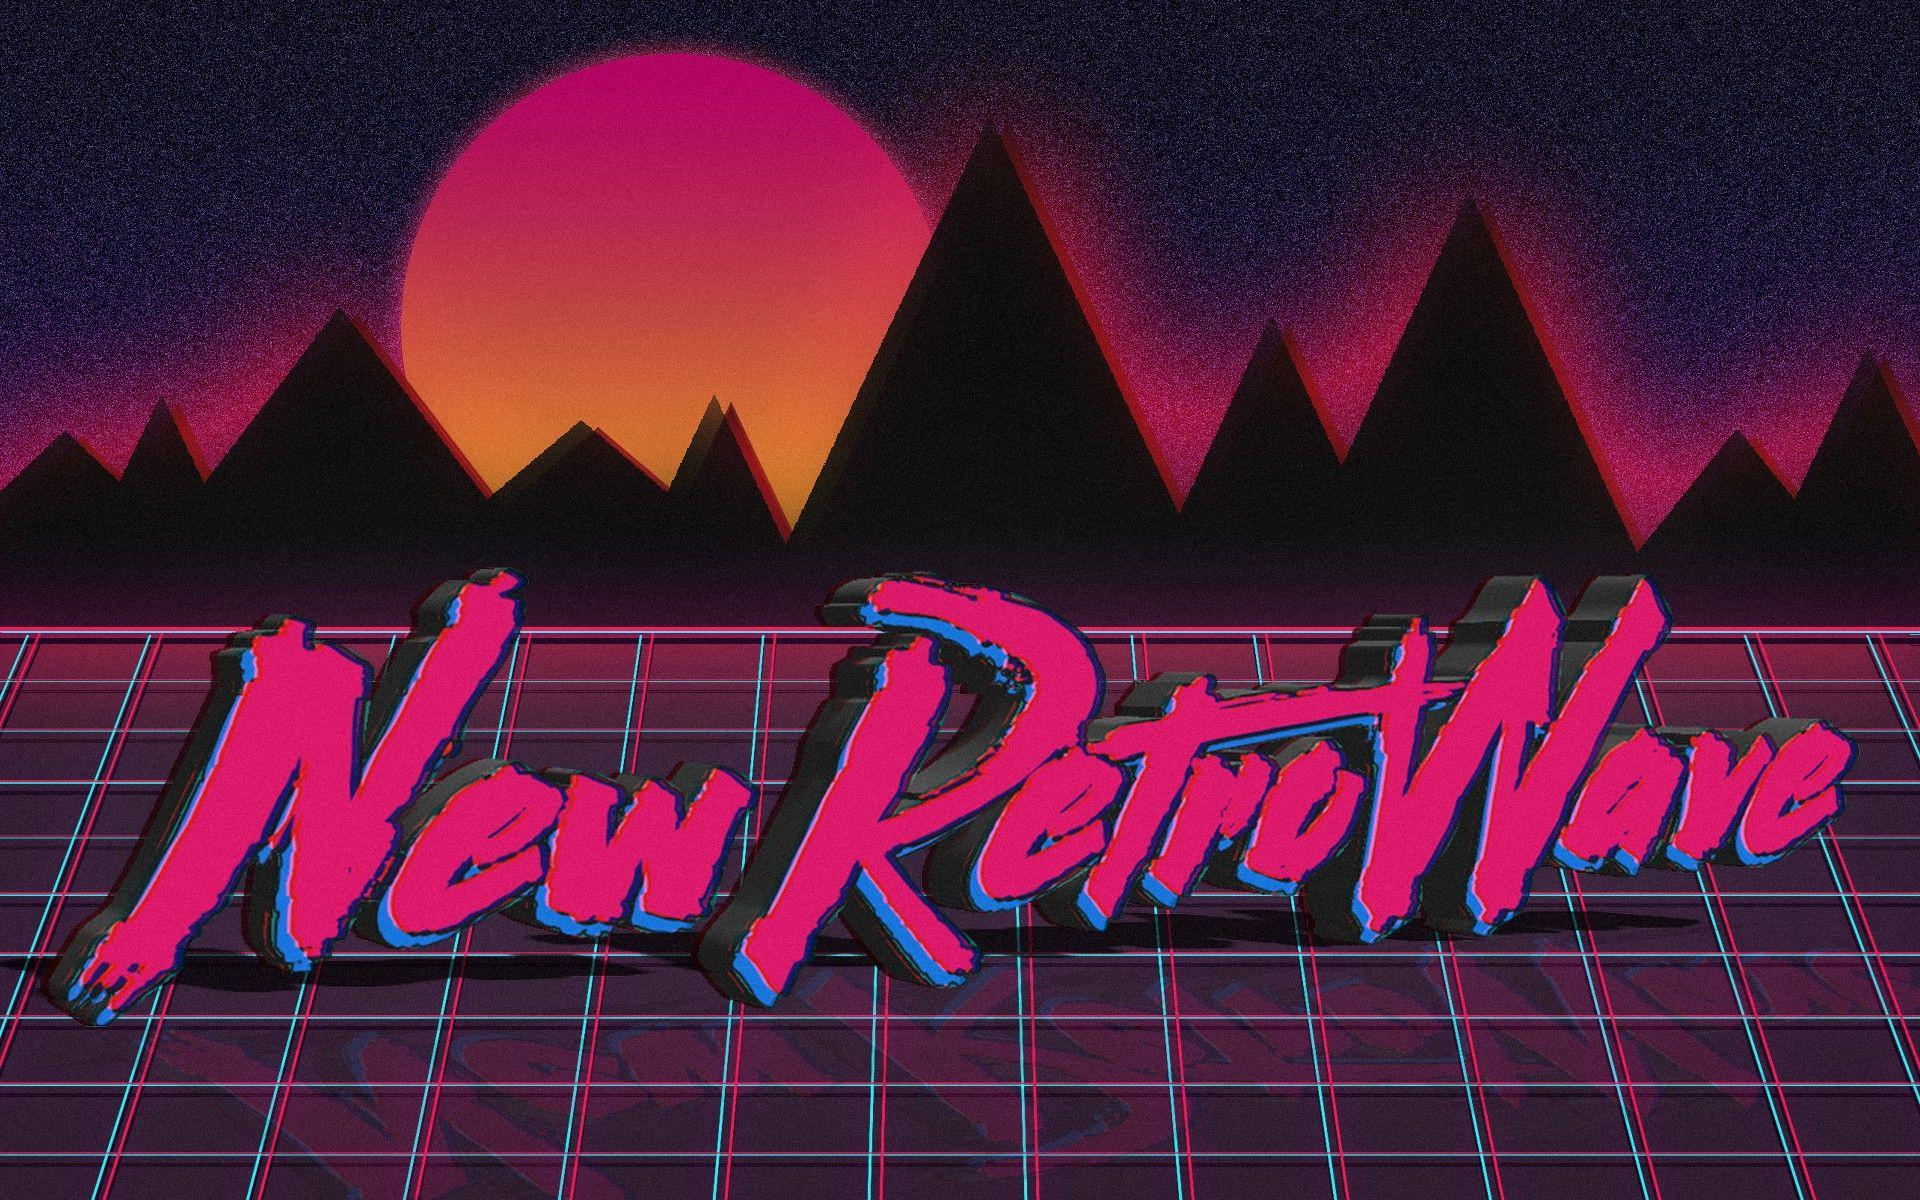 new retro wave neon 1980s synthwave vintage typography digital art